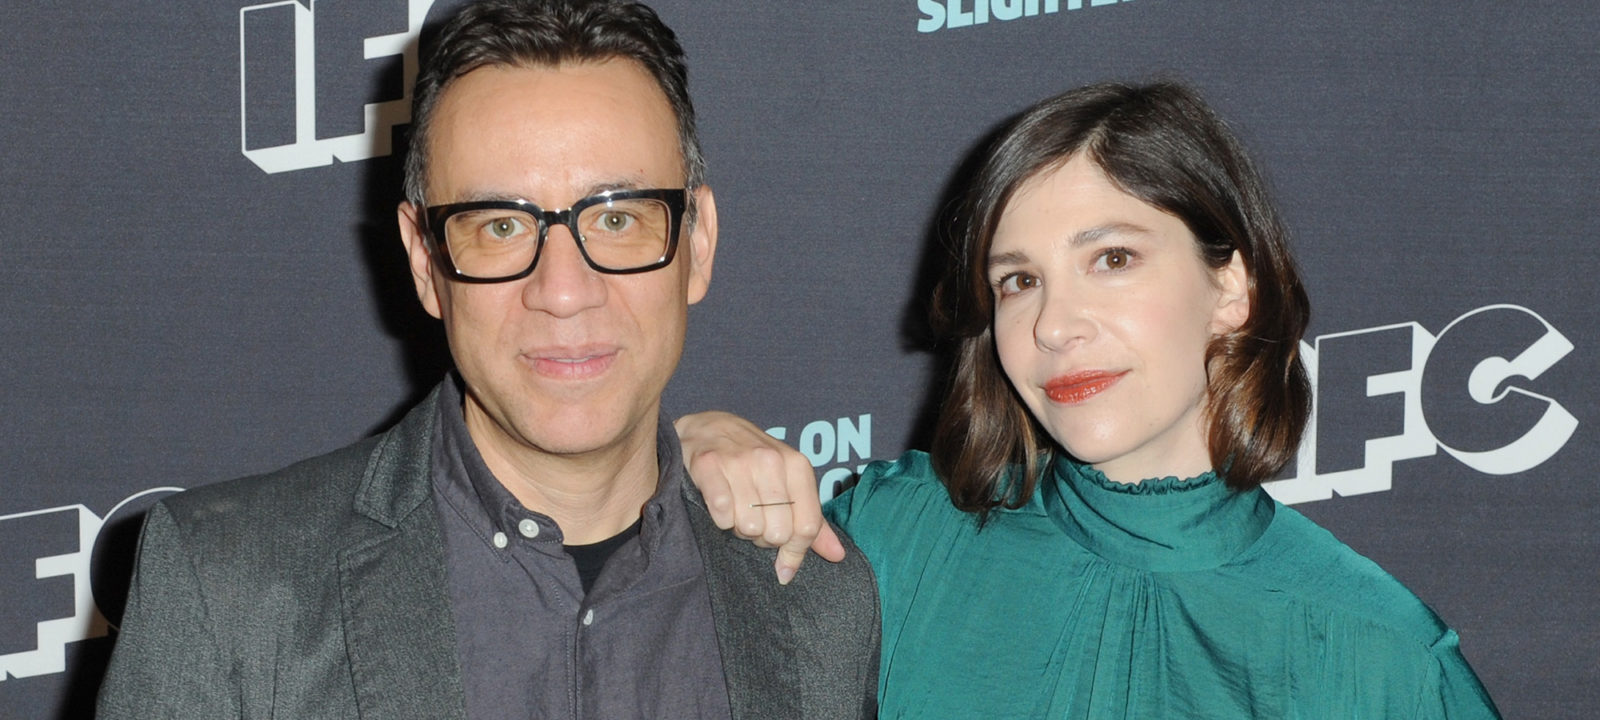 IFC presents Brockmire and Portlandia